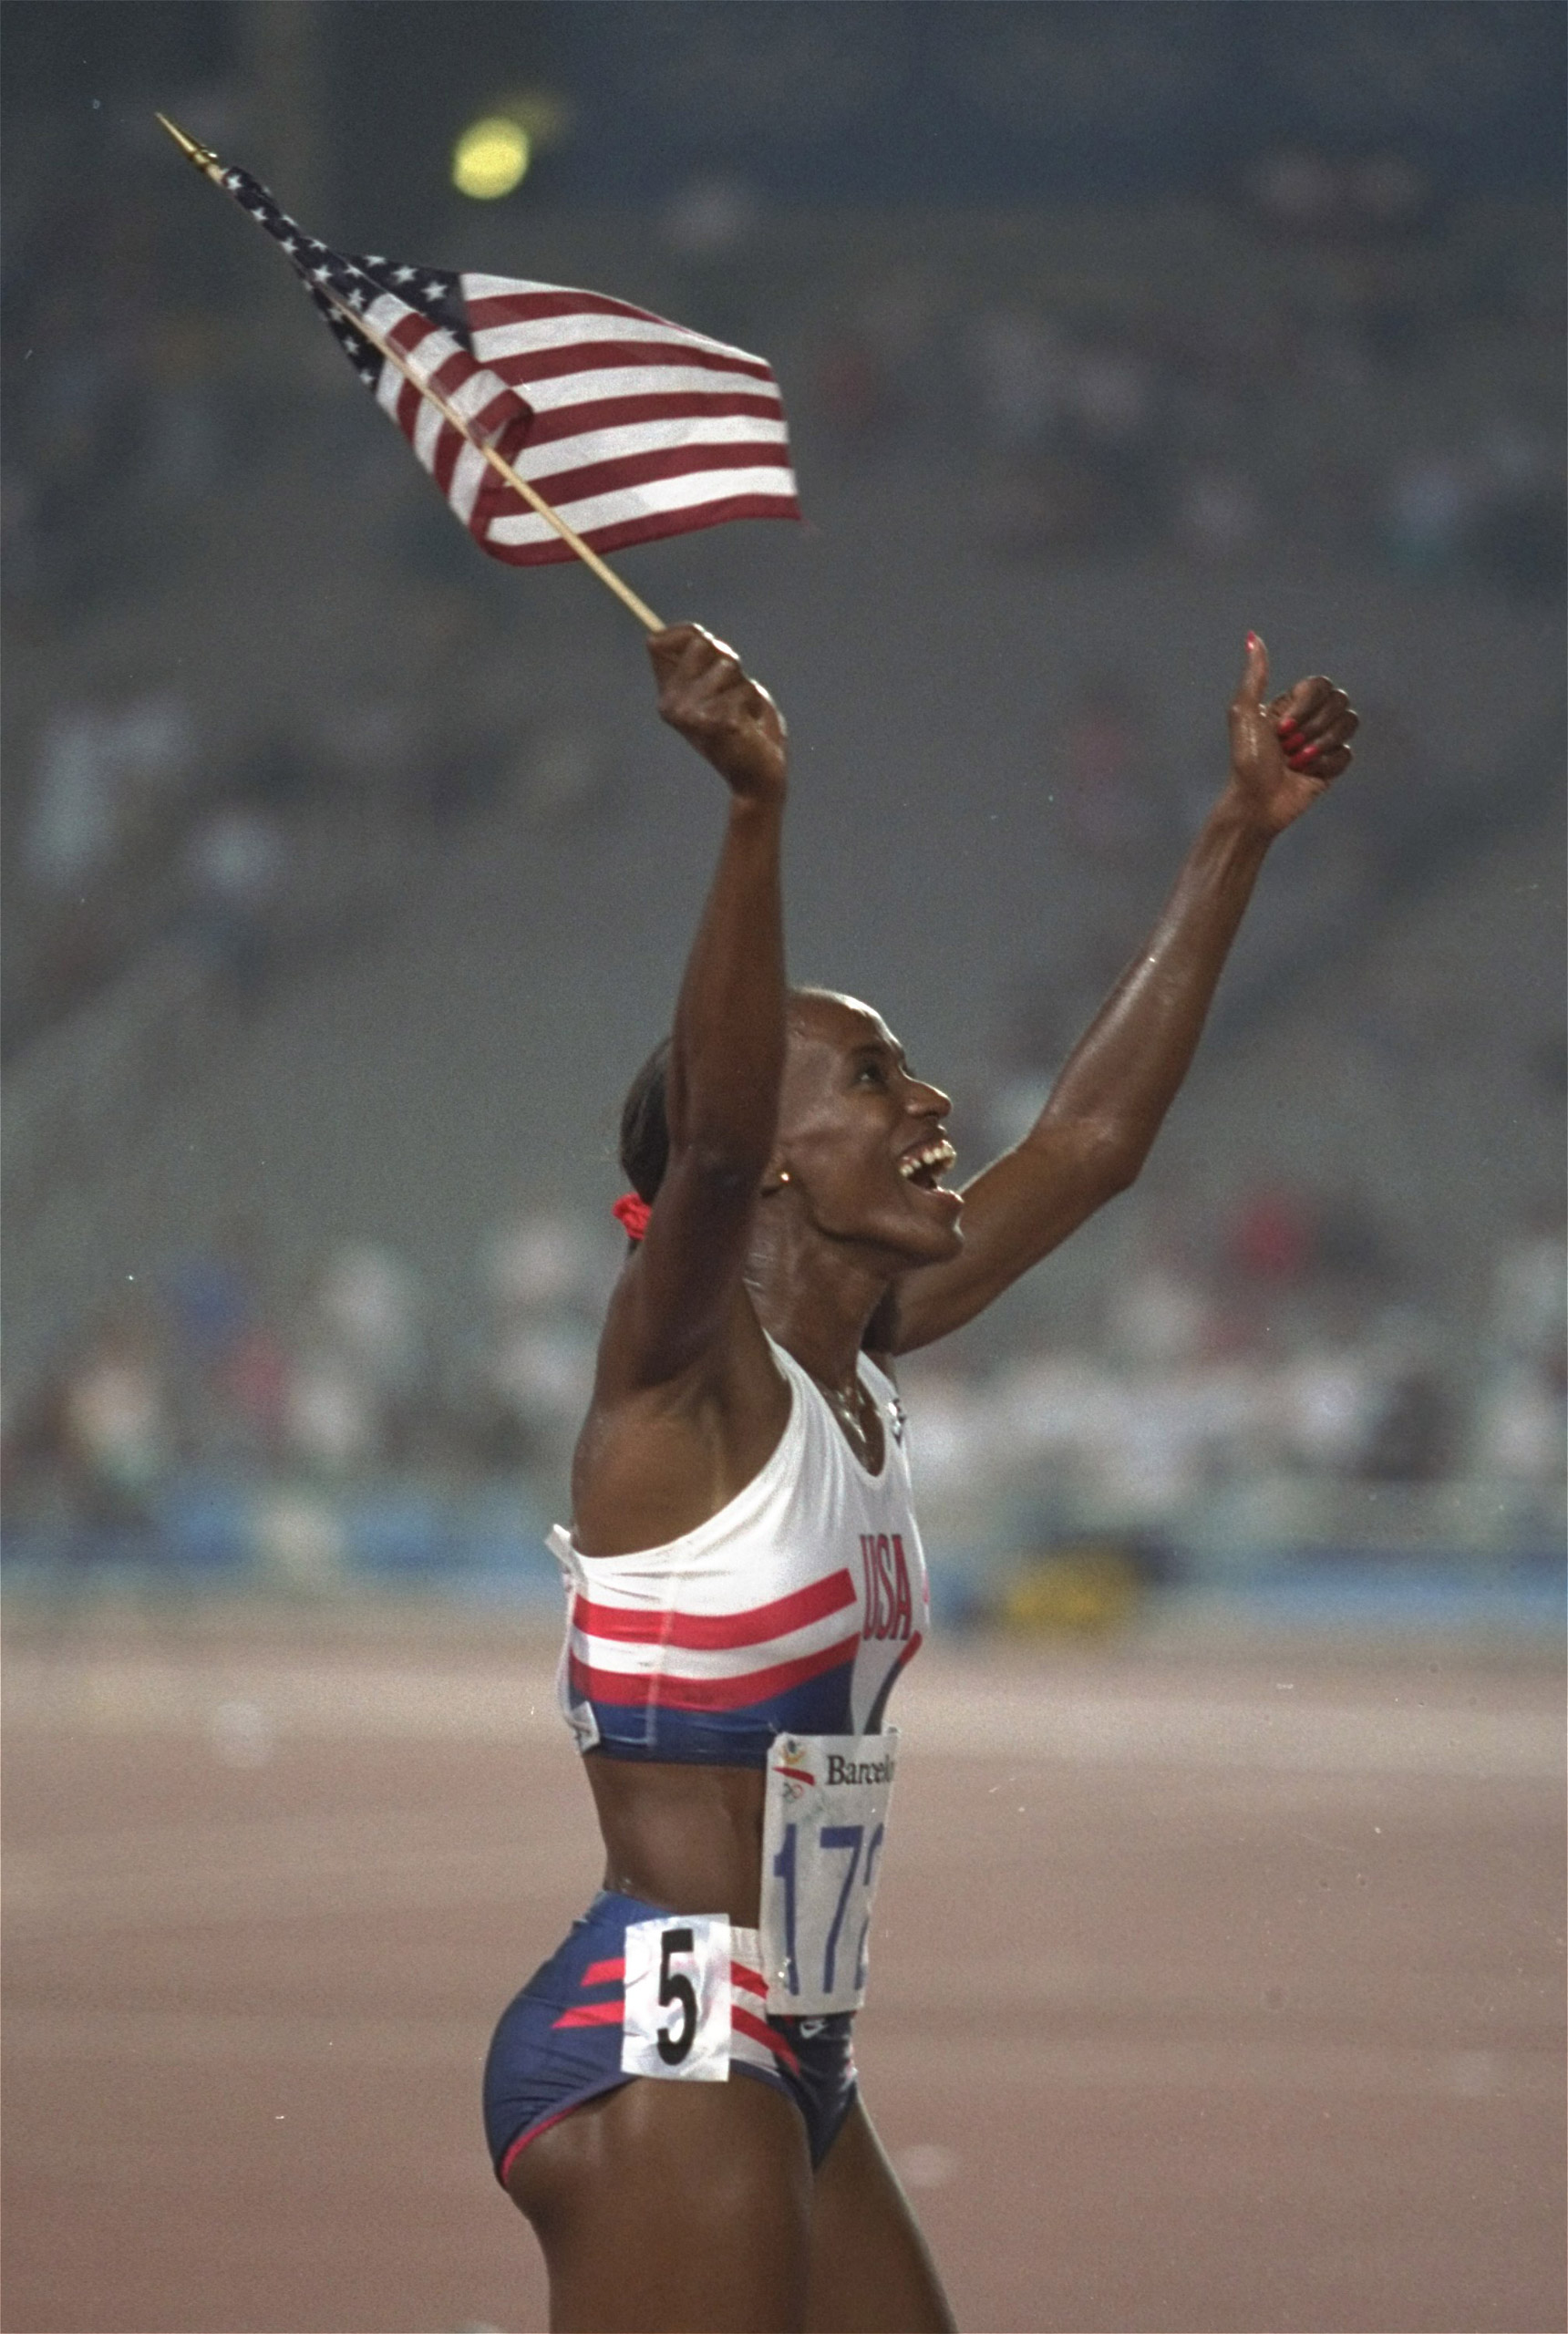 The USA's Jackie Joyner-Kersee walks the track at the Olympic Stadium in Barcelona on Aug. 2, 1992, after winning the gold medal in the Heptathlon competition during the Summer Olympic Games. She was the first woman ever to pass 7,000 points in the event.